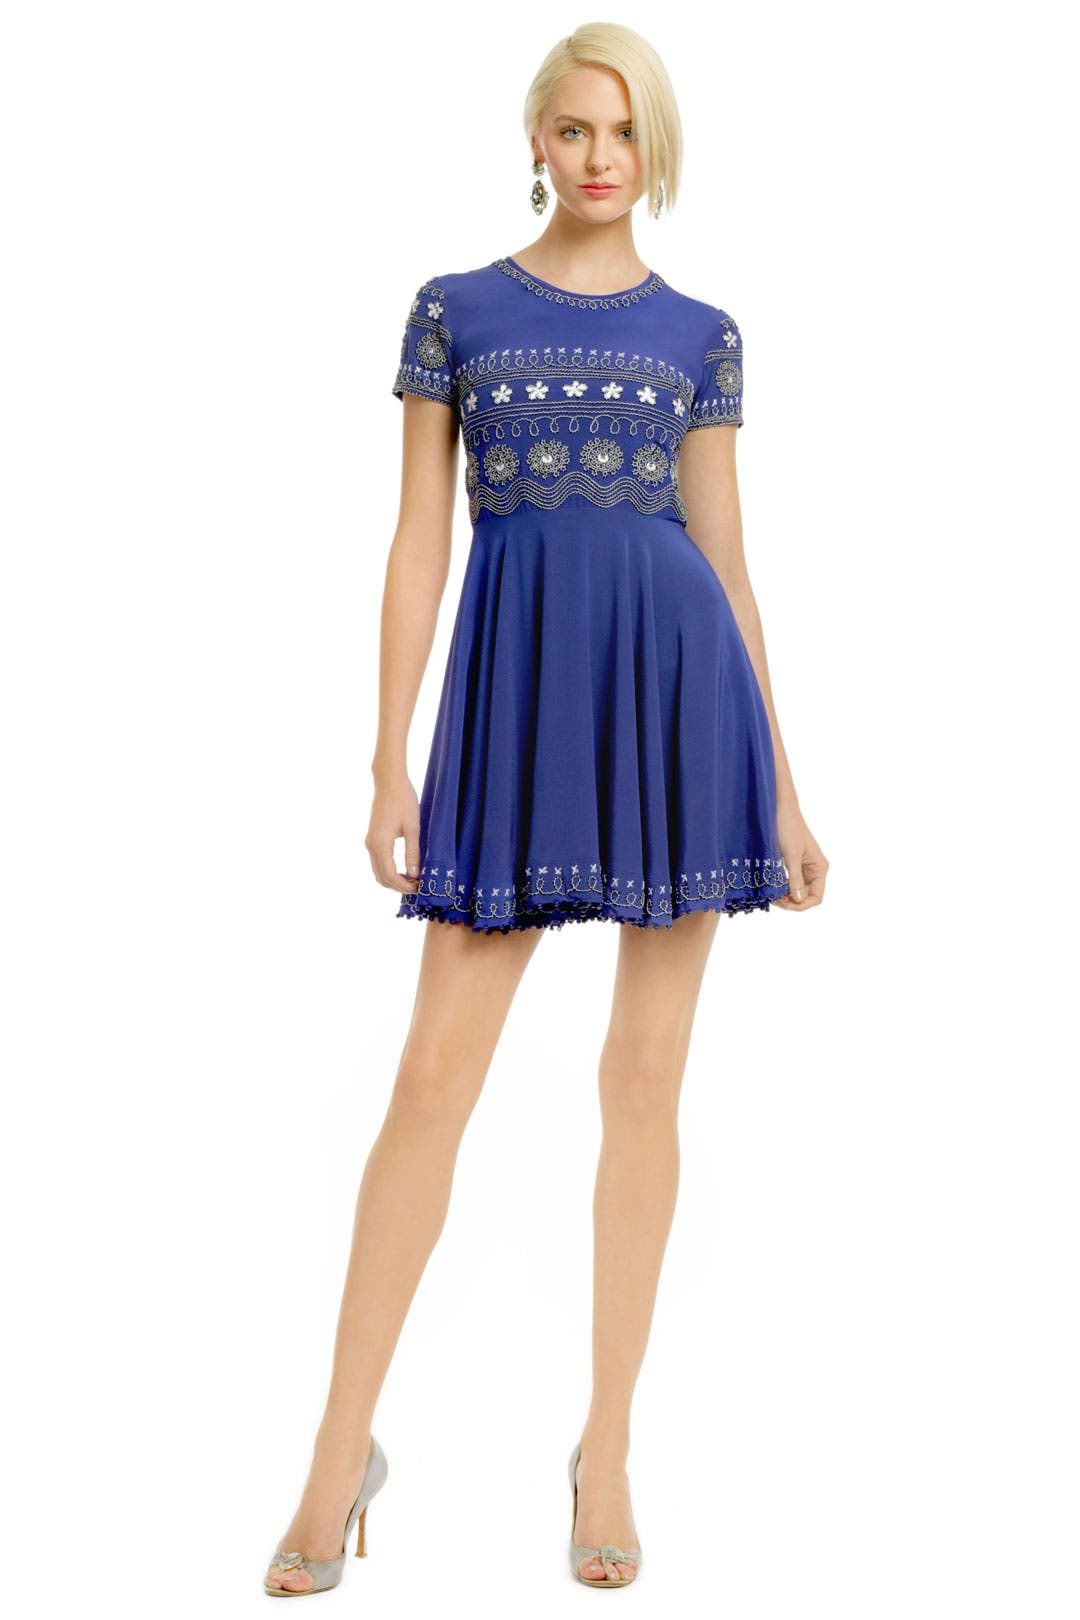 Stitch to Stitch Dress by Opening Ceremony